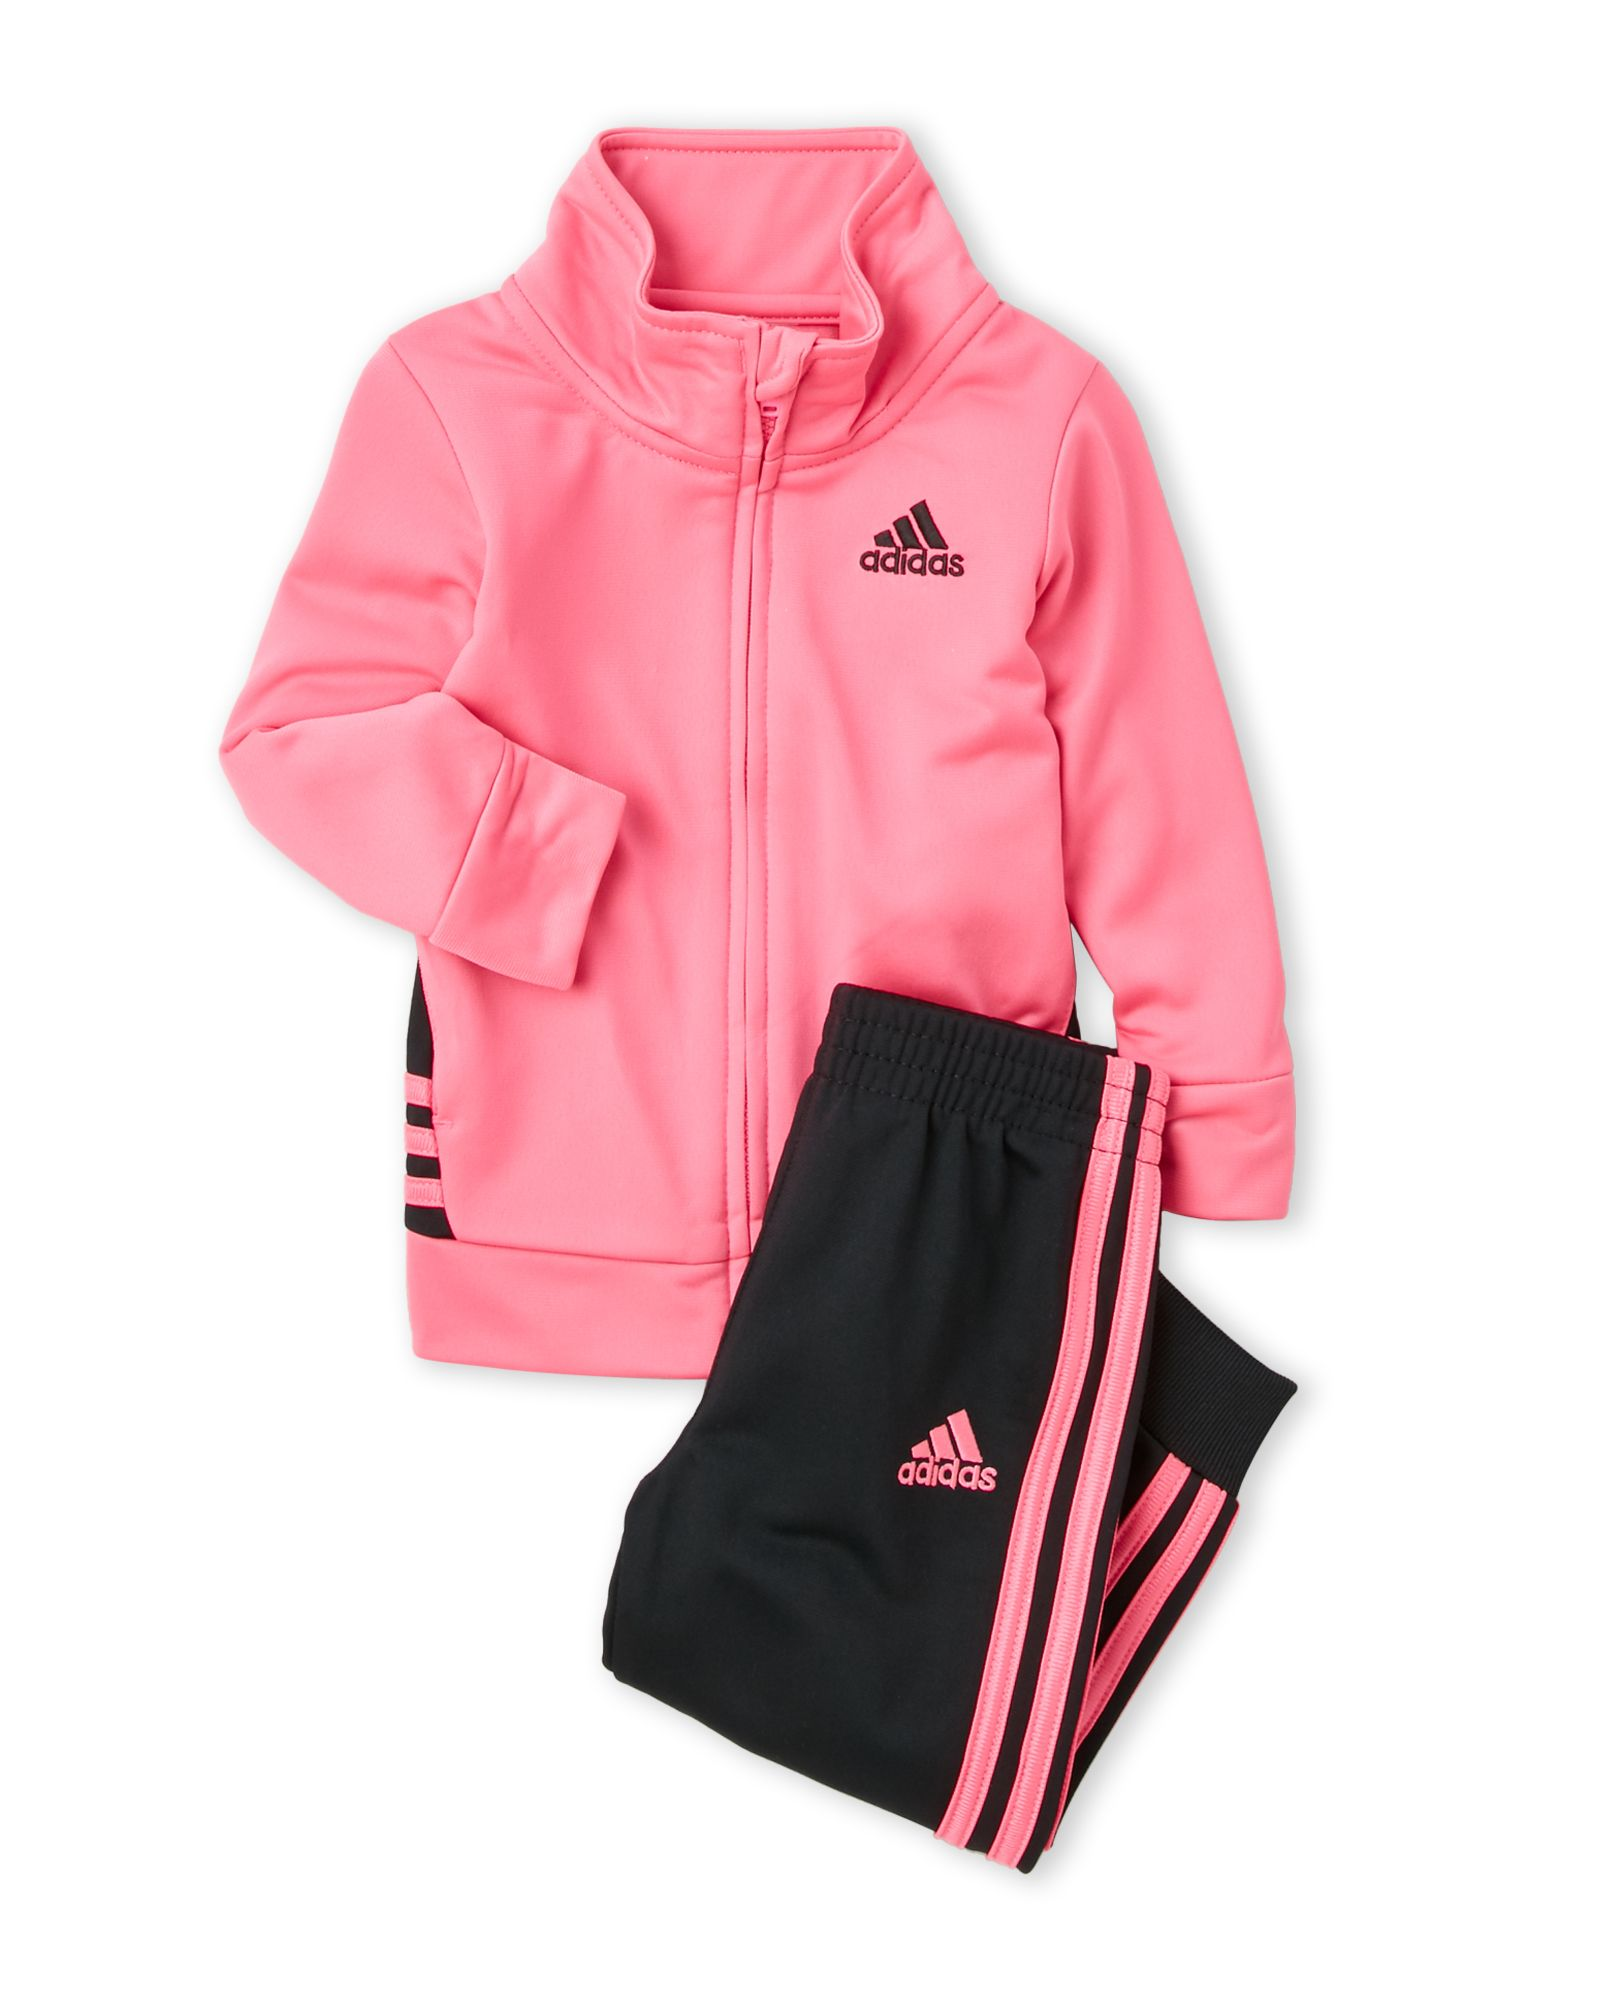 dd305524e1675 Infant Girls) Two-Piece On The Move Jogging Suit    Apparel ...